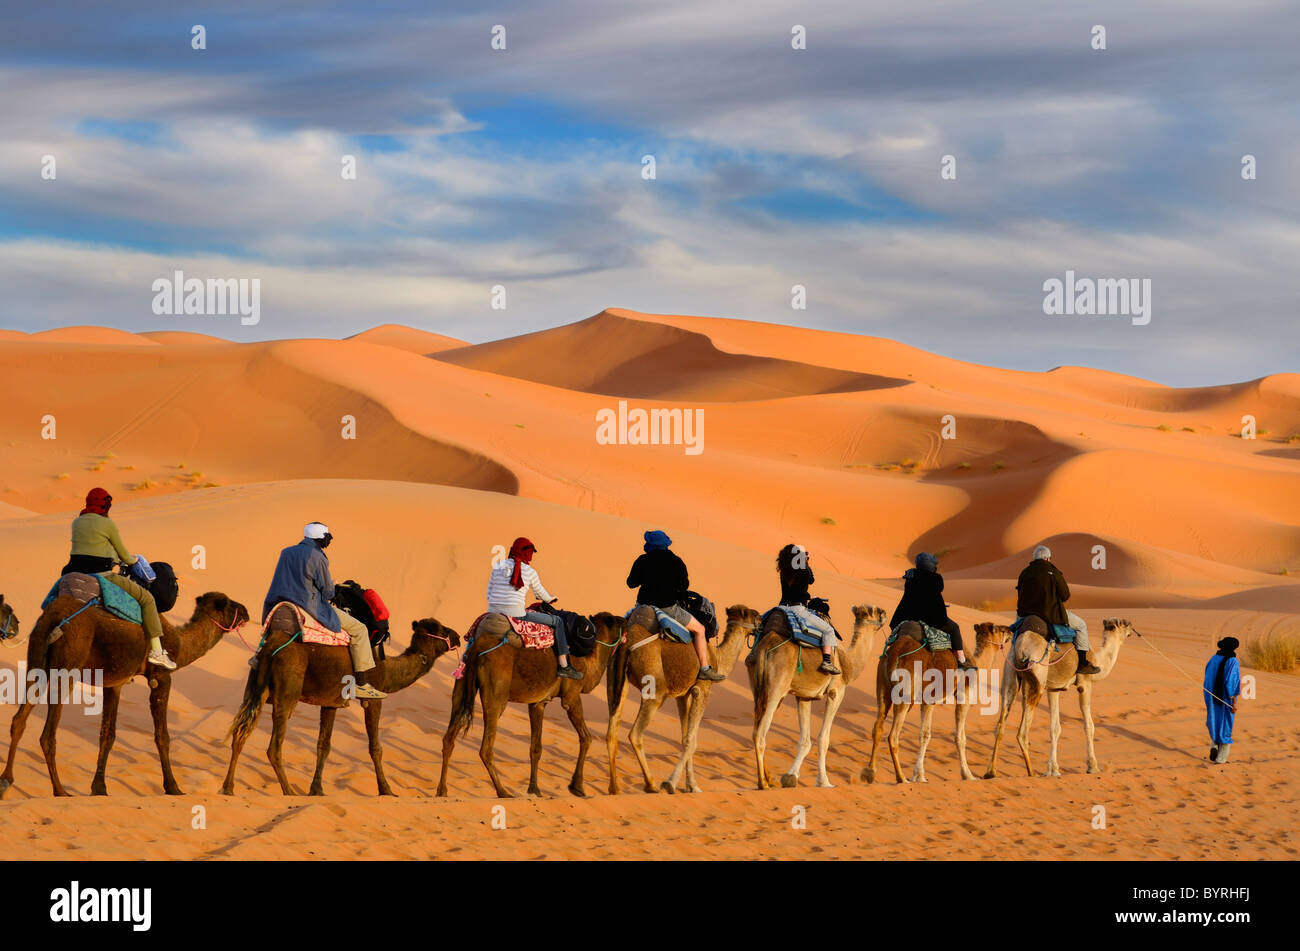 Tuareg Berber man leading a group of tourists on camels through the Erg Chebbi desert with gold sand dunes in Morocco - Stock Image